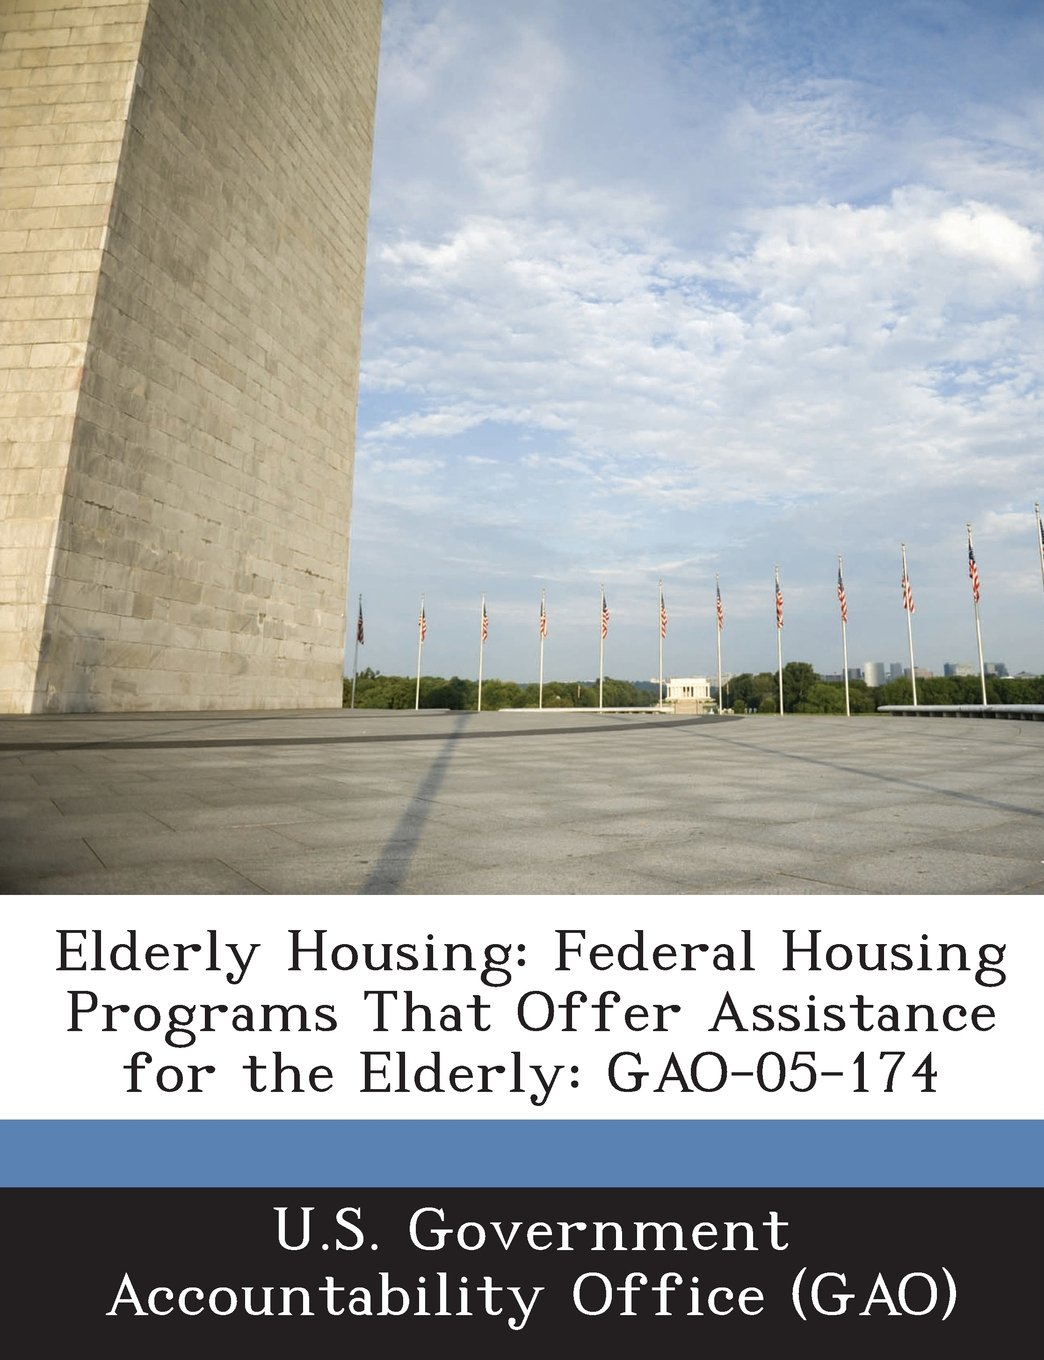 Download Elderly Housing: Federal Housing Programs That Offer Assistance for the Elderly: GAO-05-174 ebook